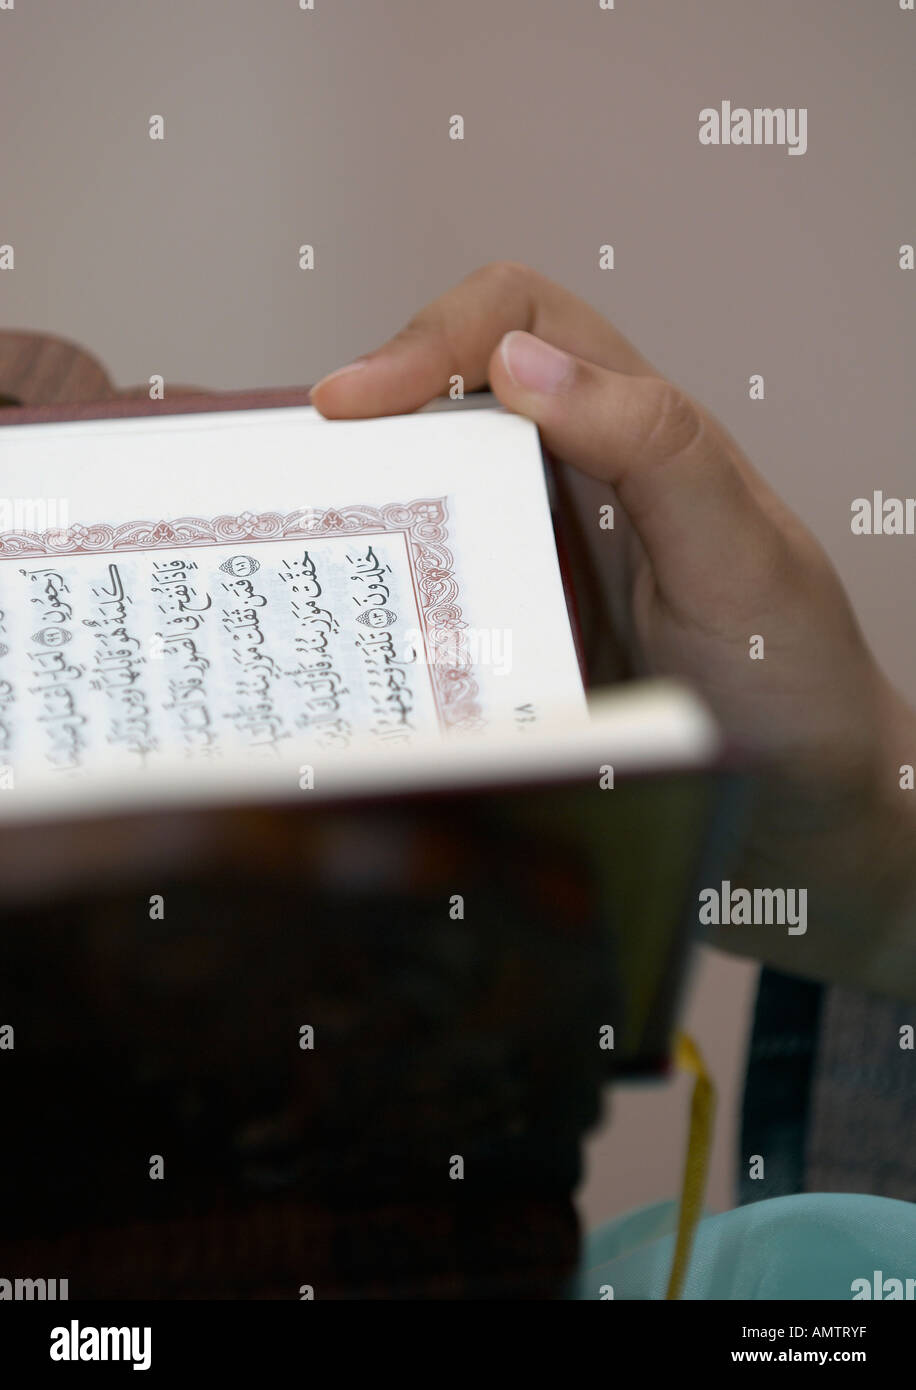 A man's hand on an open copy of the Quran - Stock Image